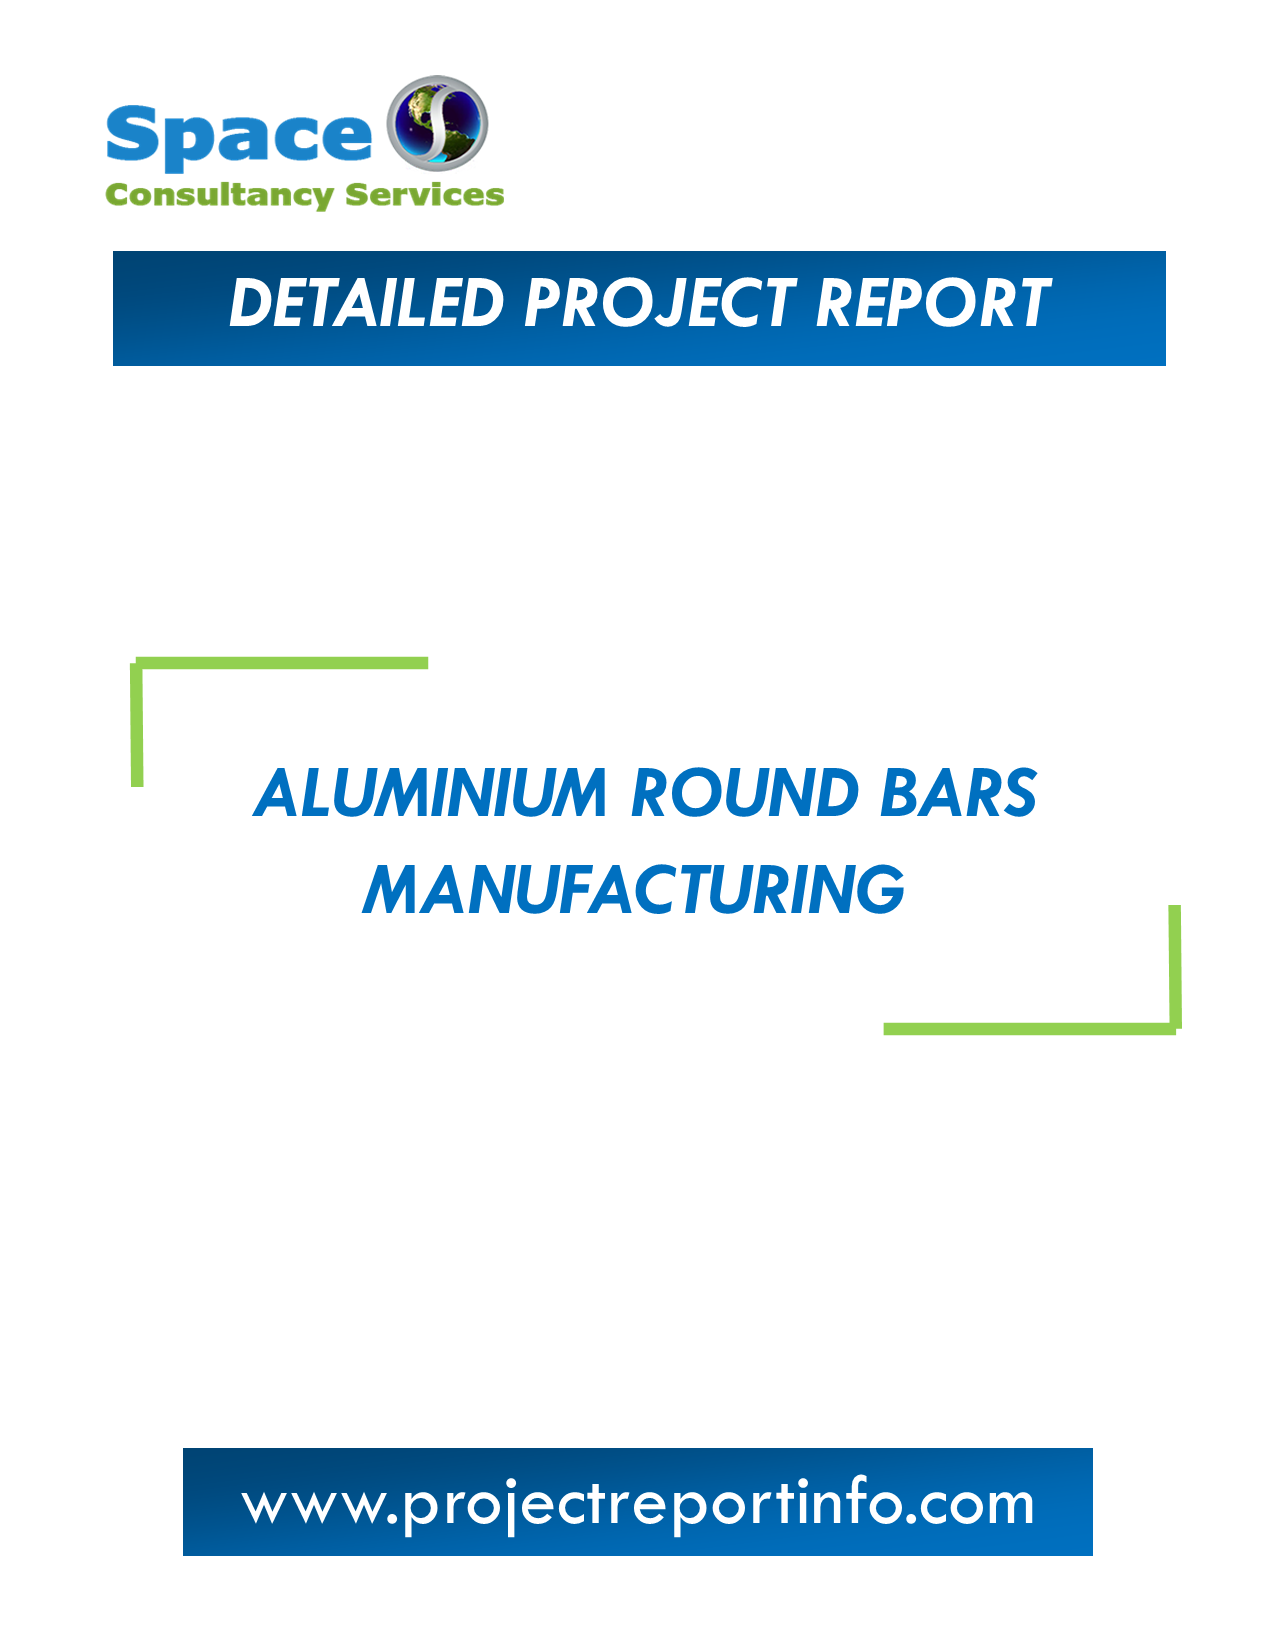 Project Report on Aluminium Round Bars Manufacturing